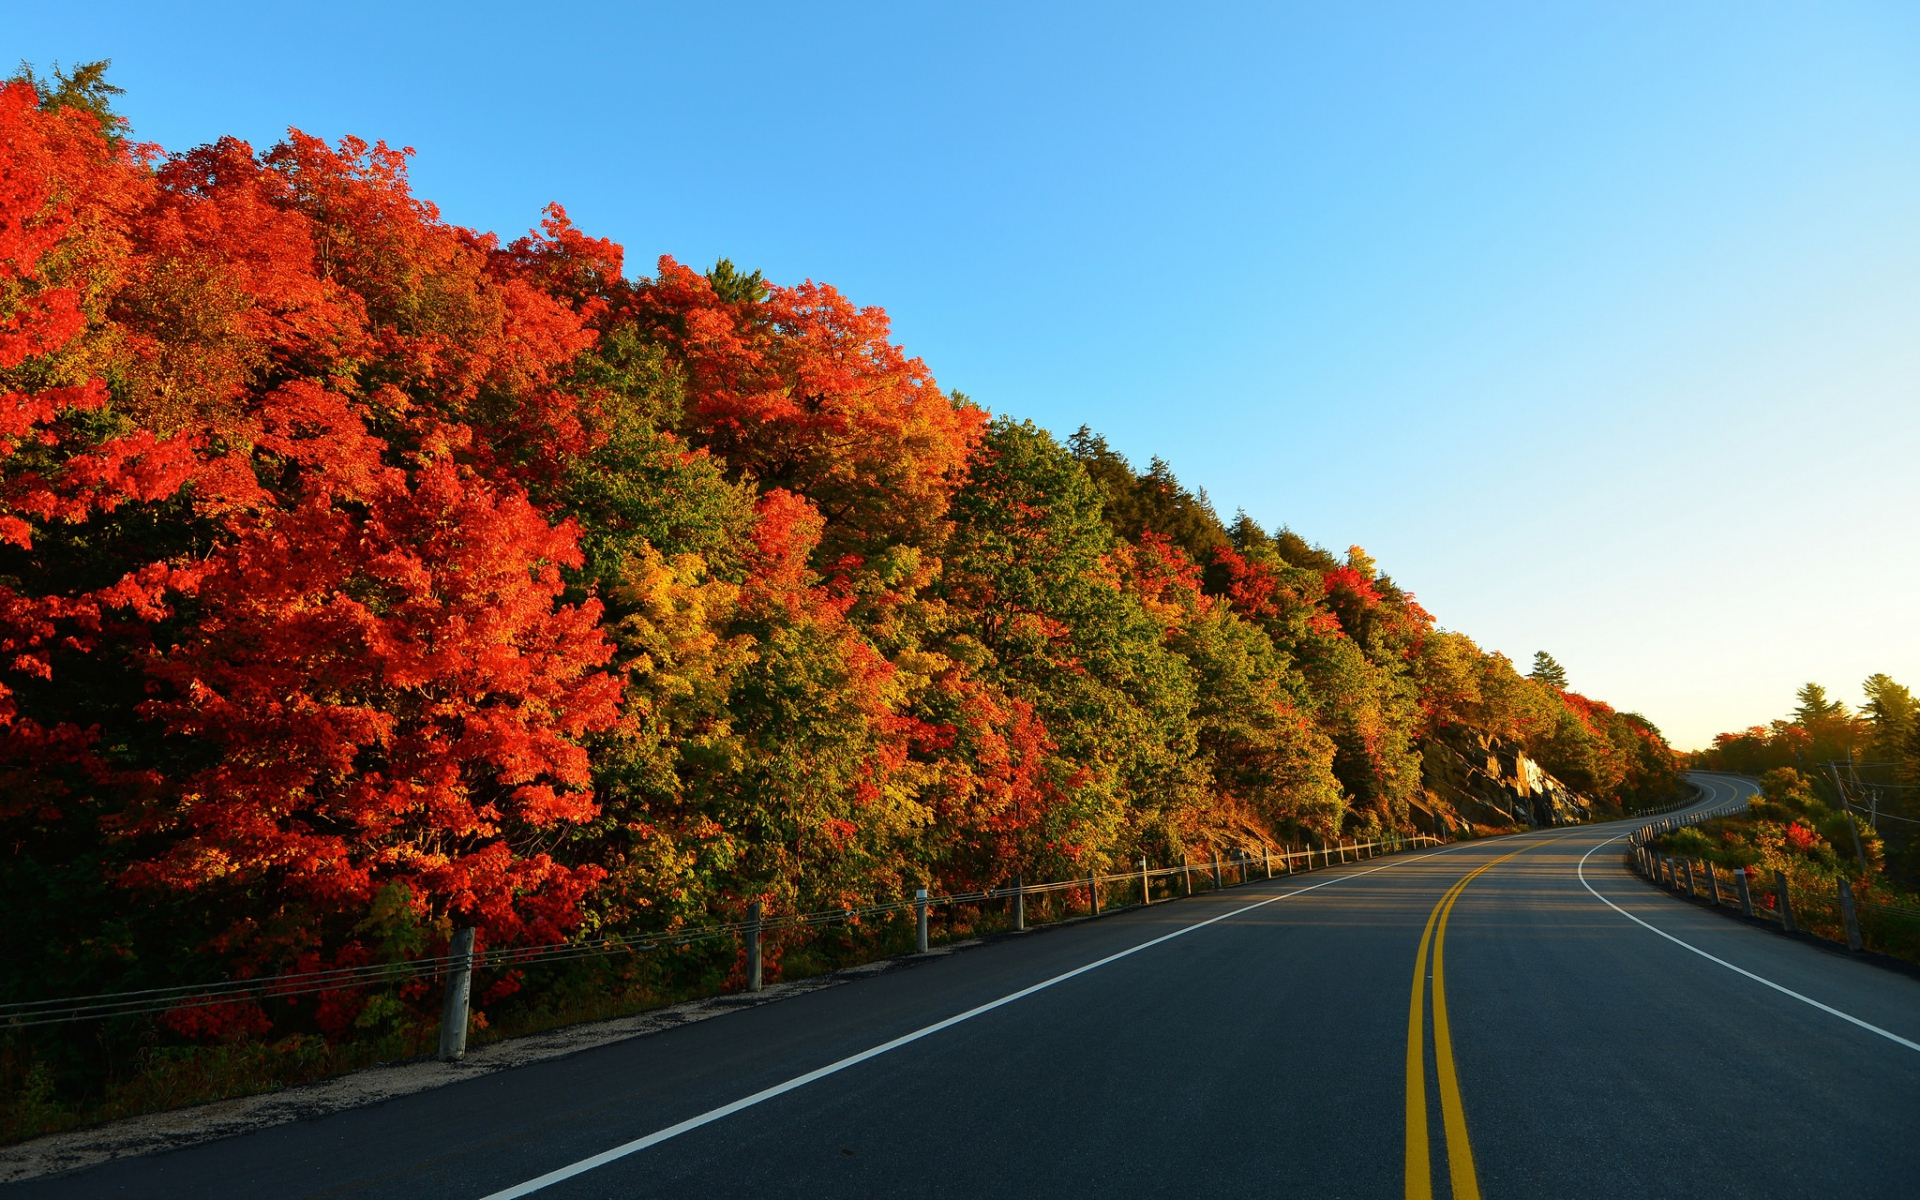 Best Iphone X Wallpaper Notch Autumn Trees Amp Curvy Road Wallpapers Autumn Trees